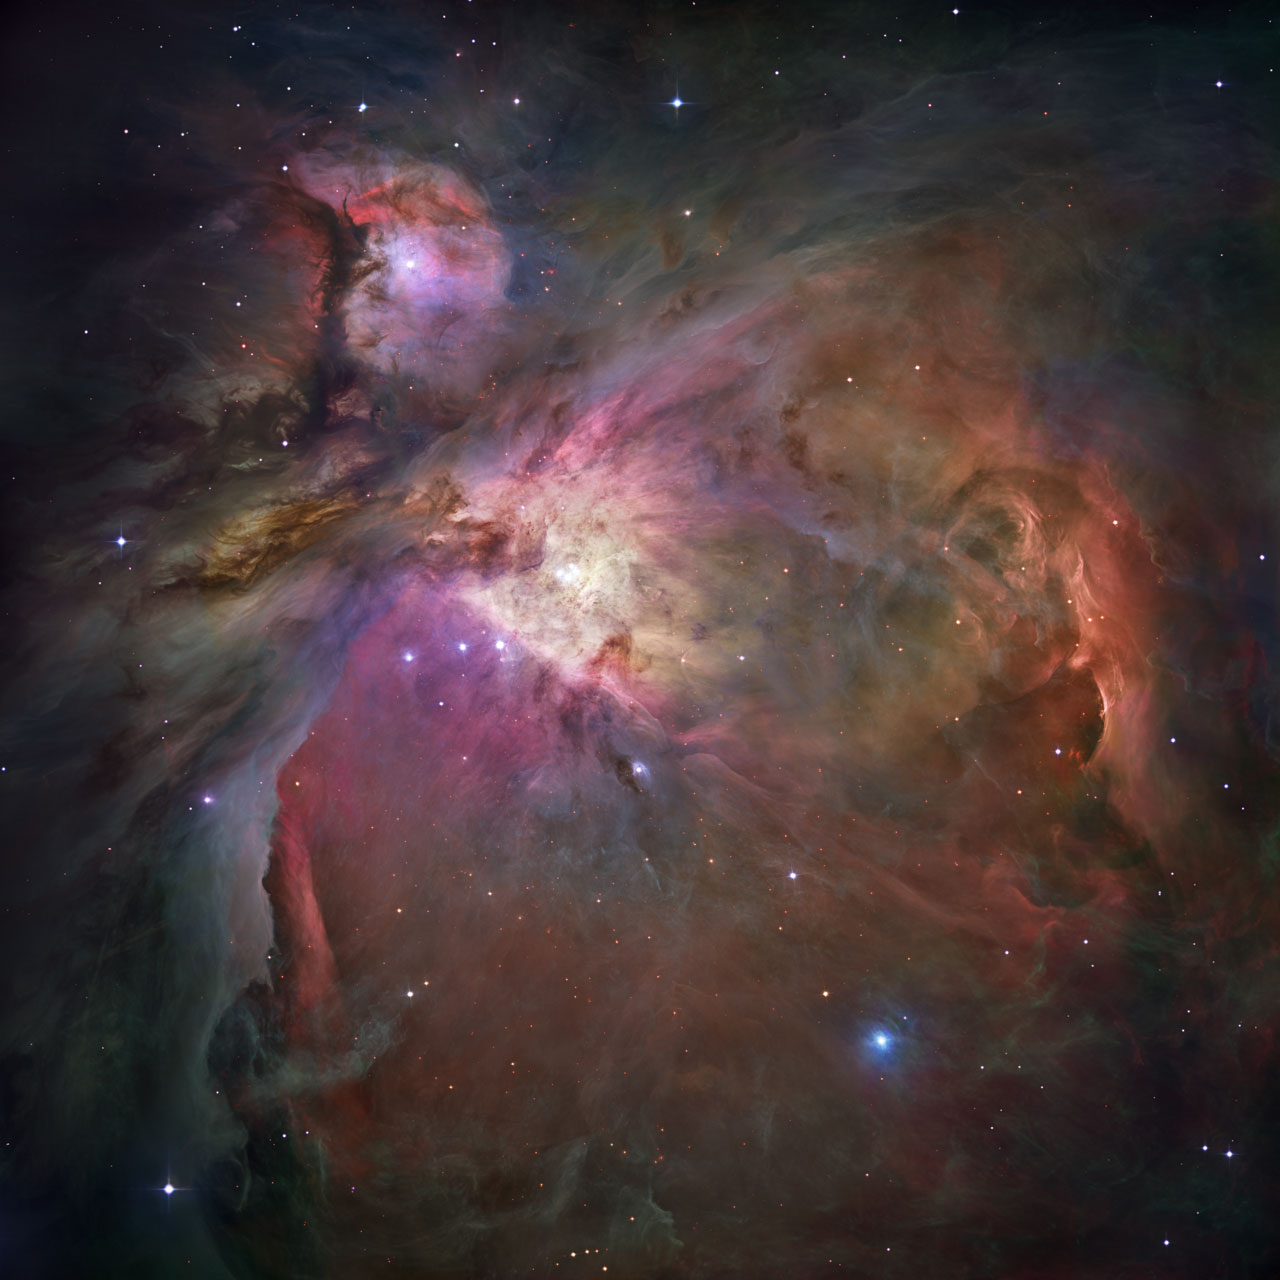 orion%20hubble%20nasa%201